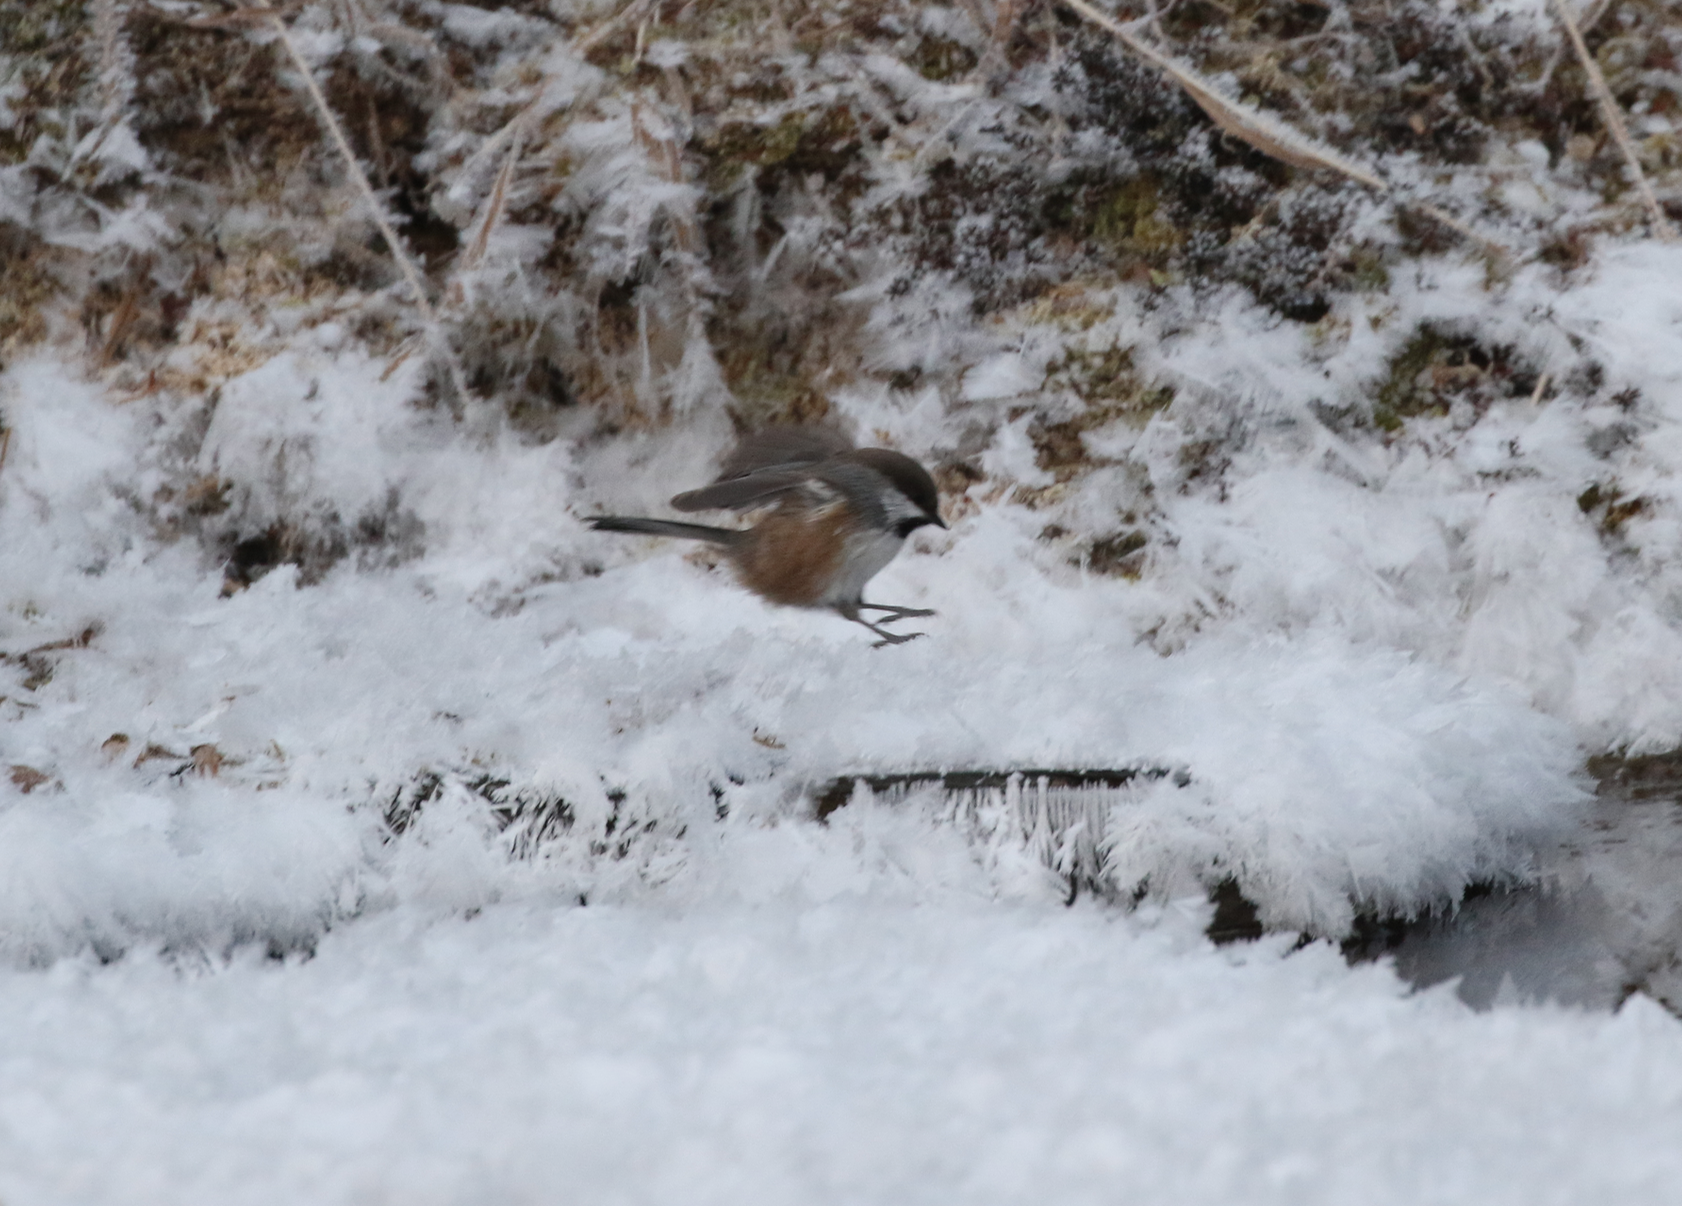 A Boreal Chickadee, with distinct chestnut flanks clearly visible.